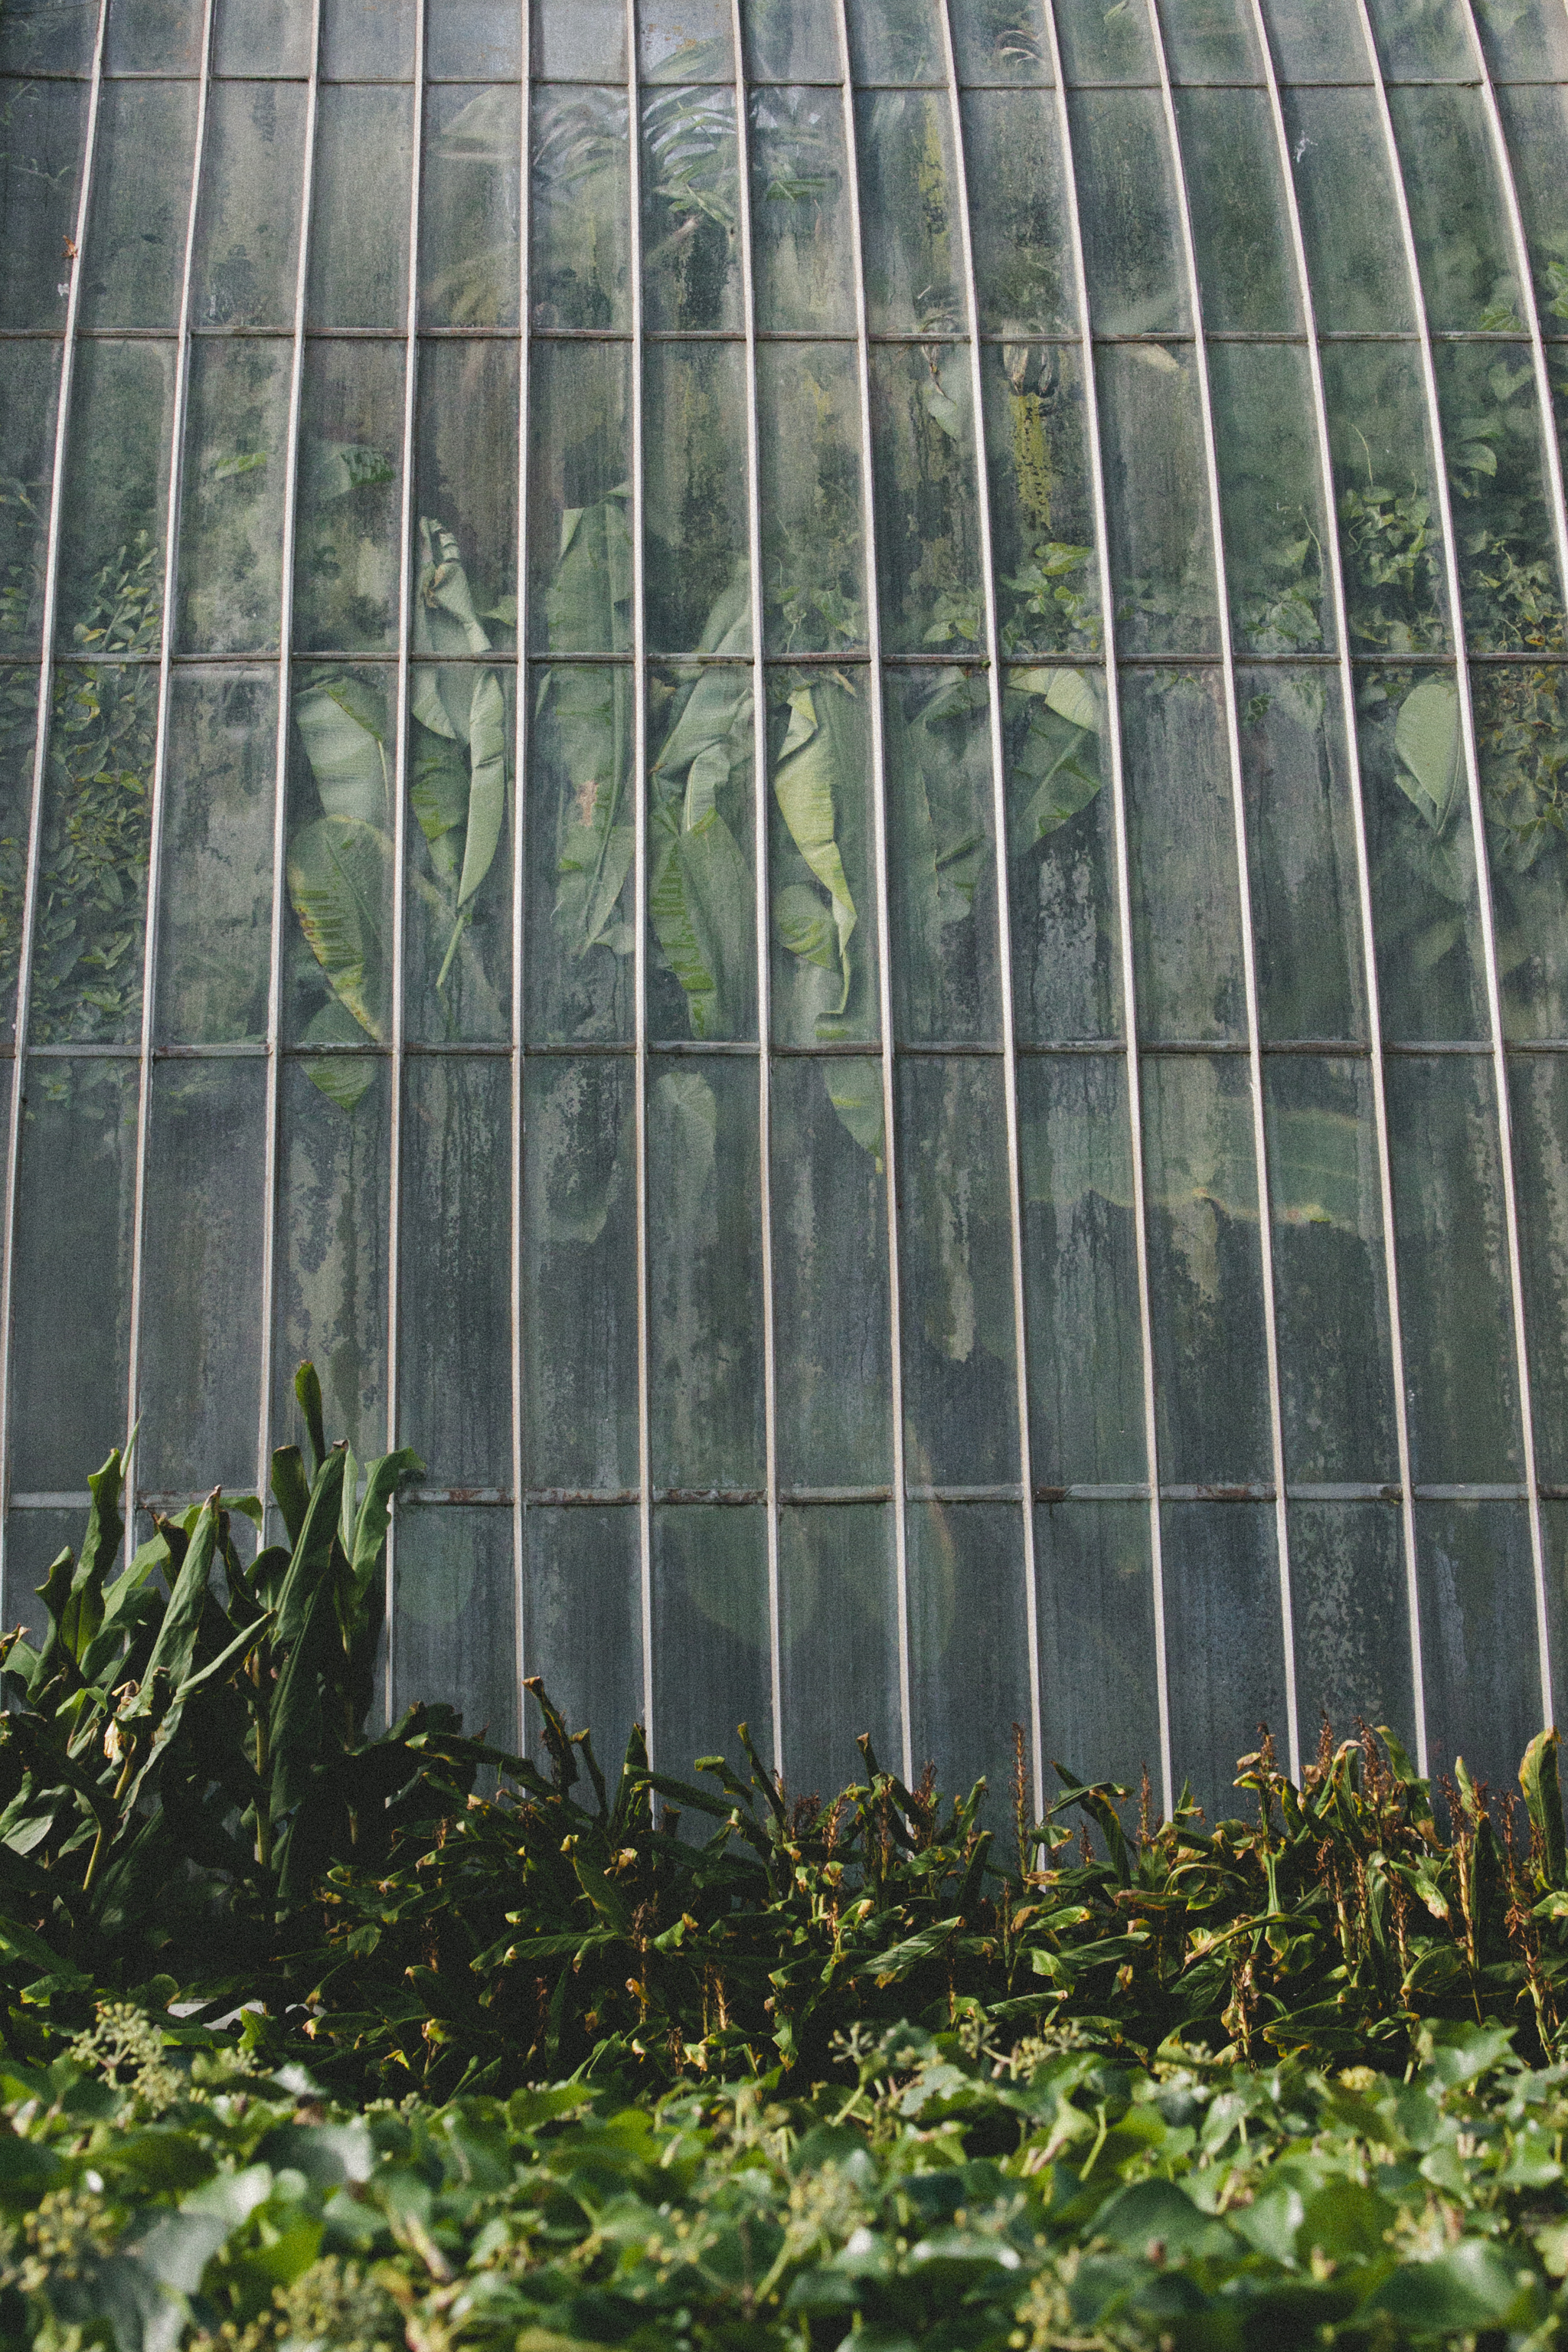 catholic singles in kew gardens Tickets for kew gardens & palace: priority entrance a breath of fresh air in one of the world's largest botanical gardens  kew gardens also has two different art galleries - the marianne.